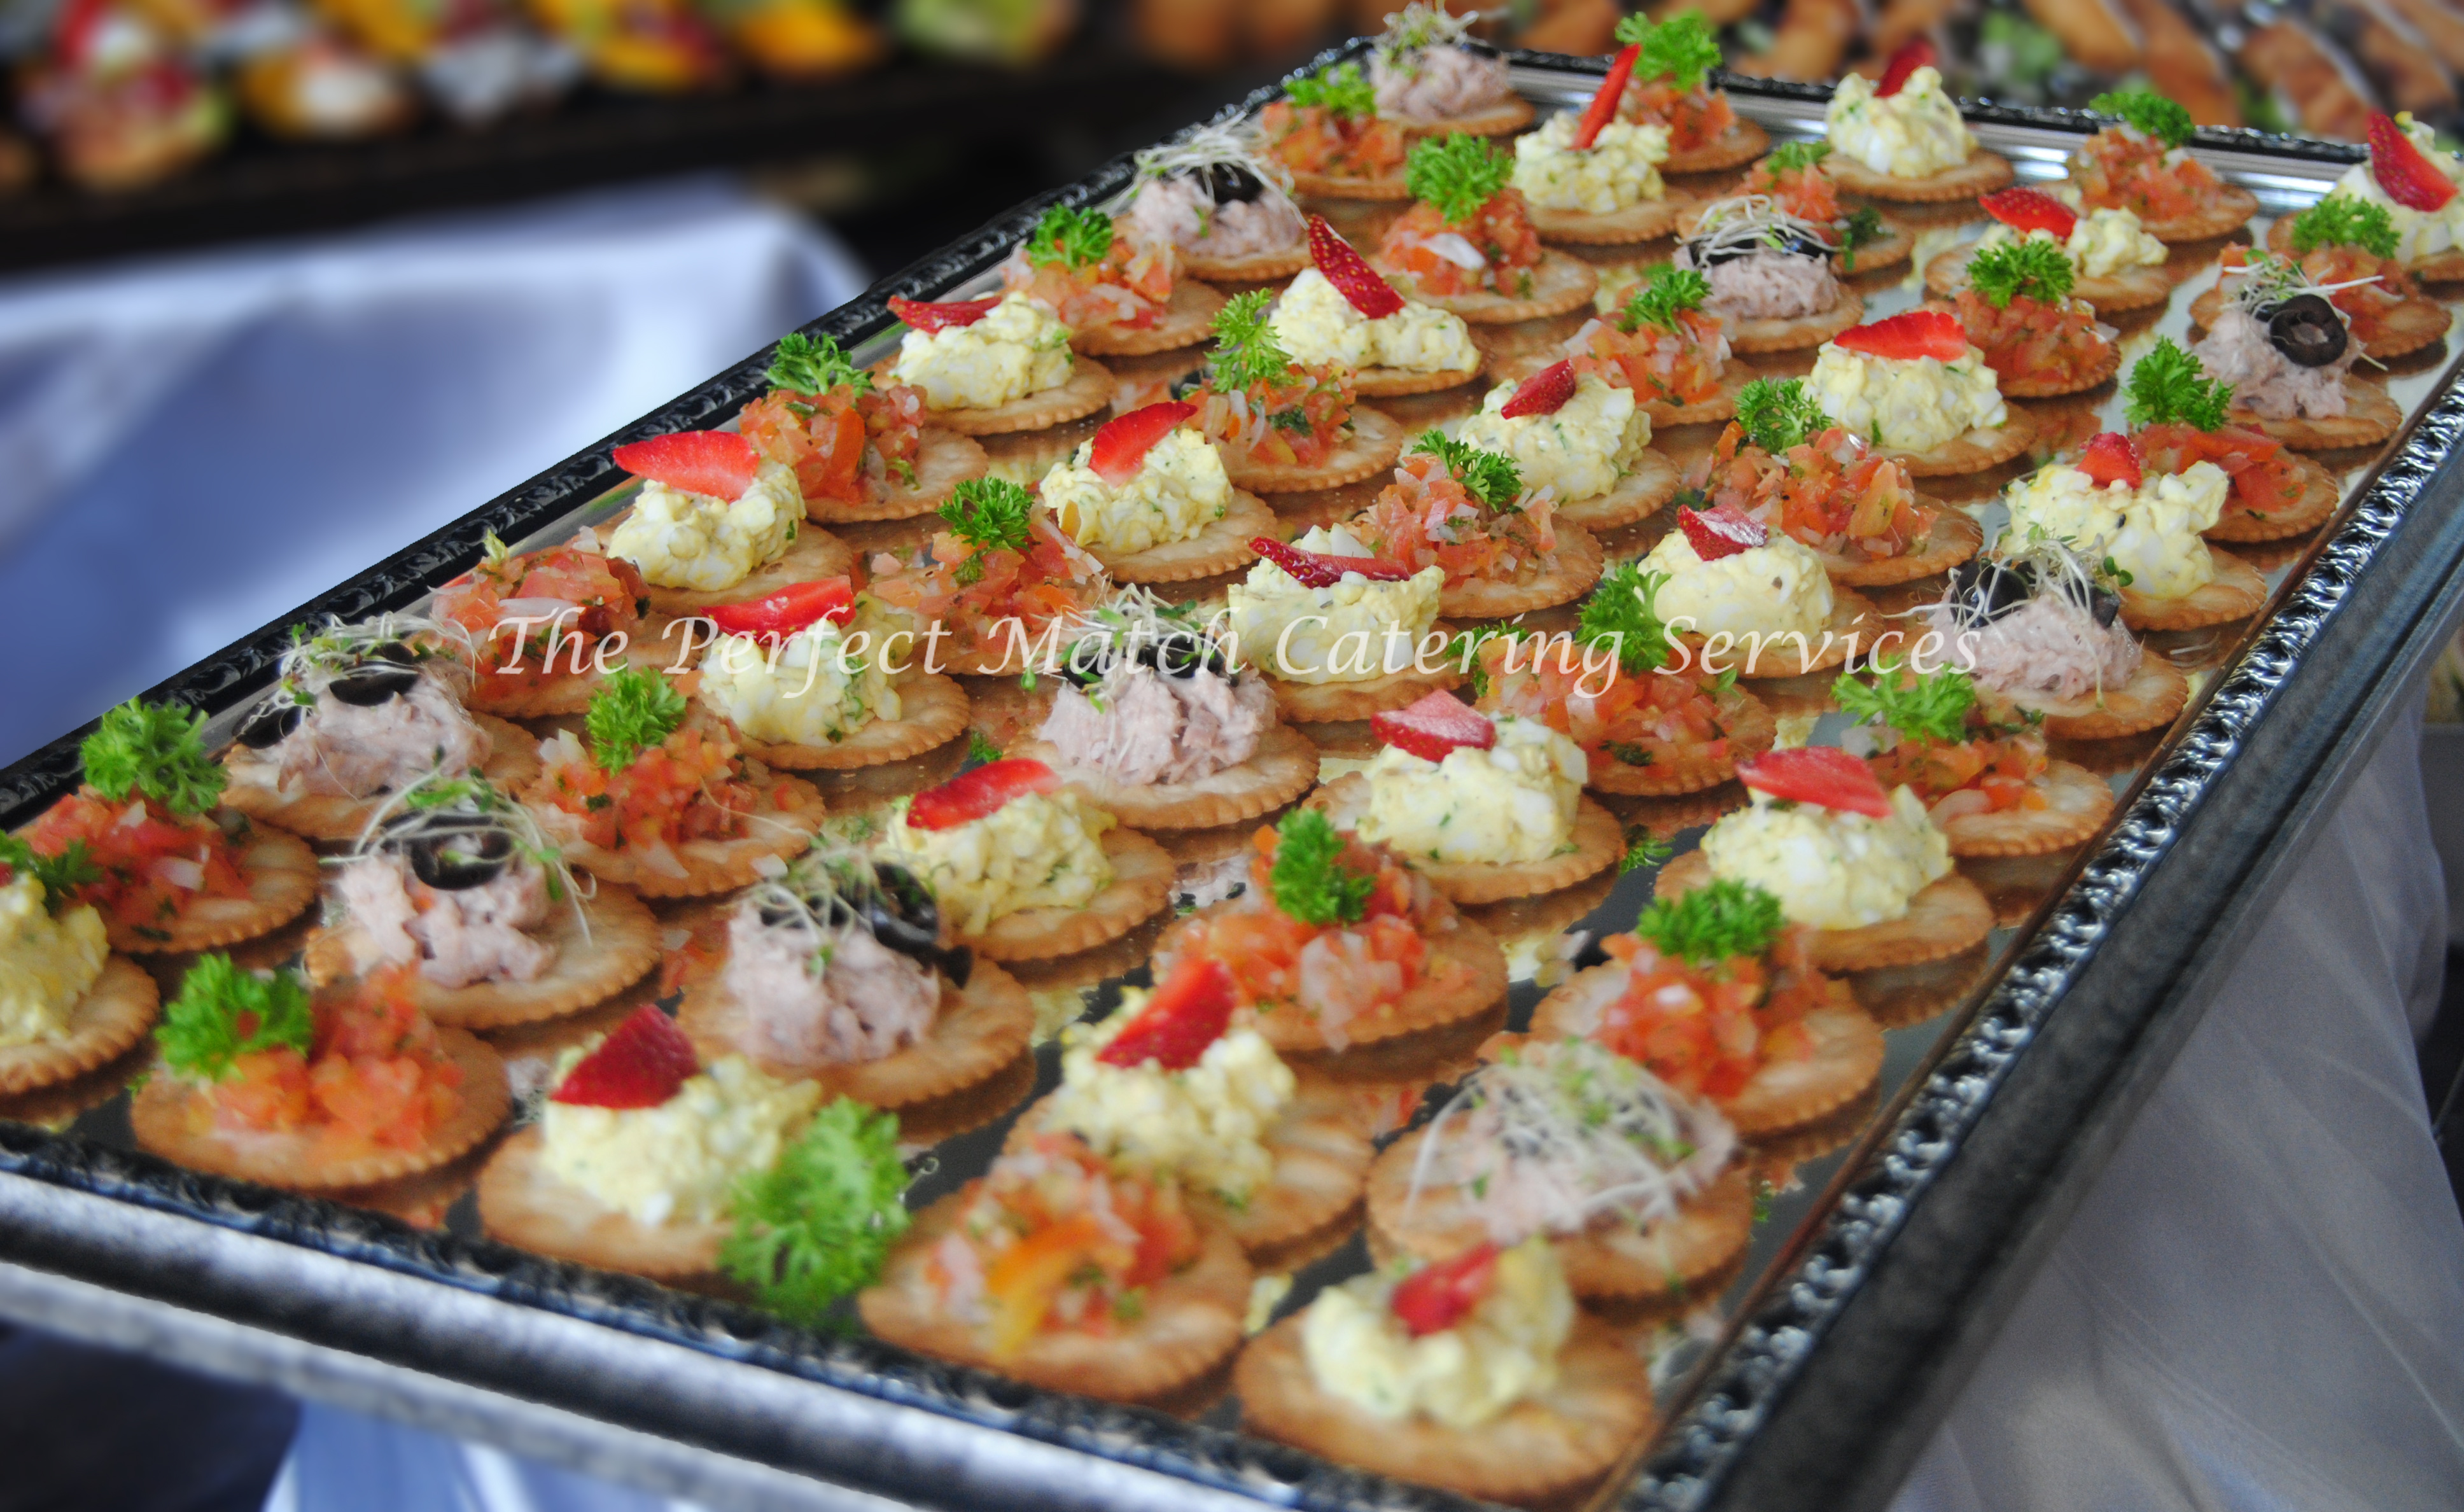 Finger food buffet in kl the perfect match catering services for Canape buffle